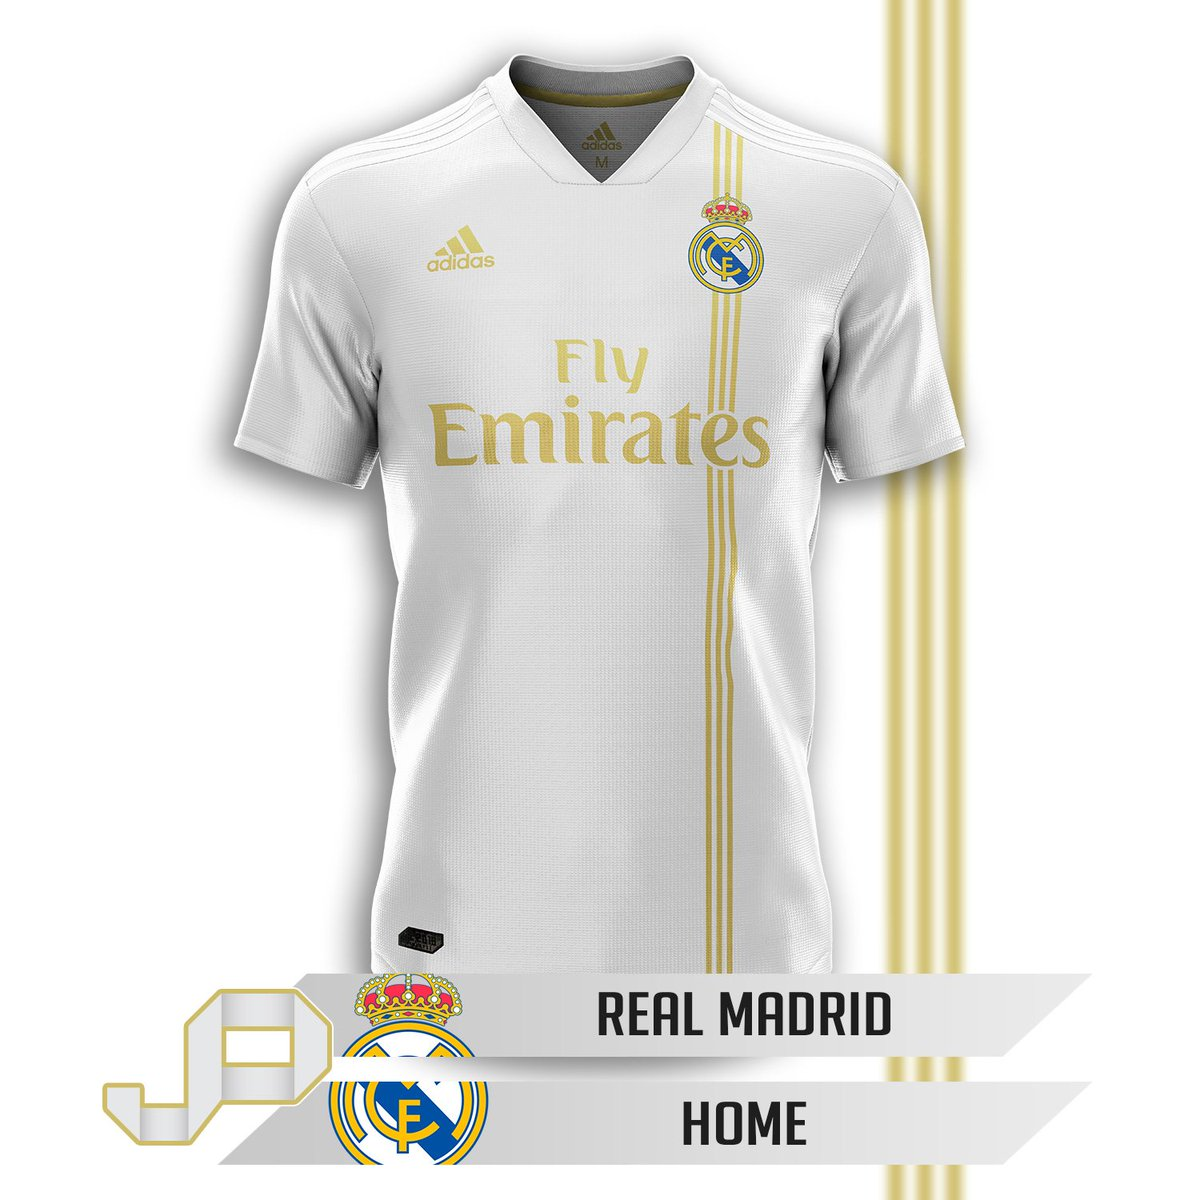 the best attitude 5202a 1fa28 Real Madrid Home Concept Kit. Rate 1-10! 😊 #JPereira ...